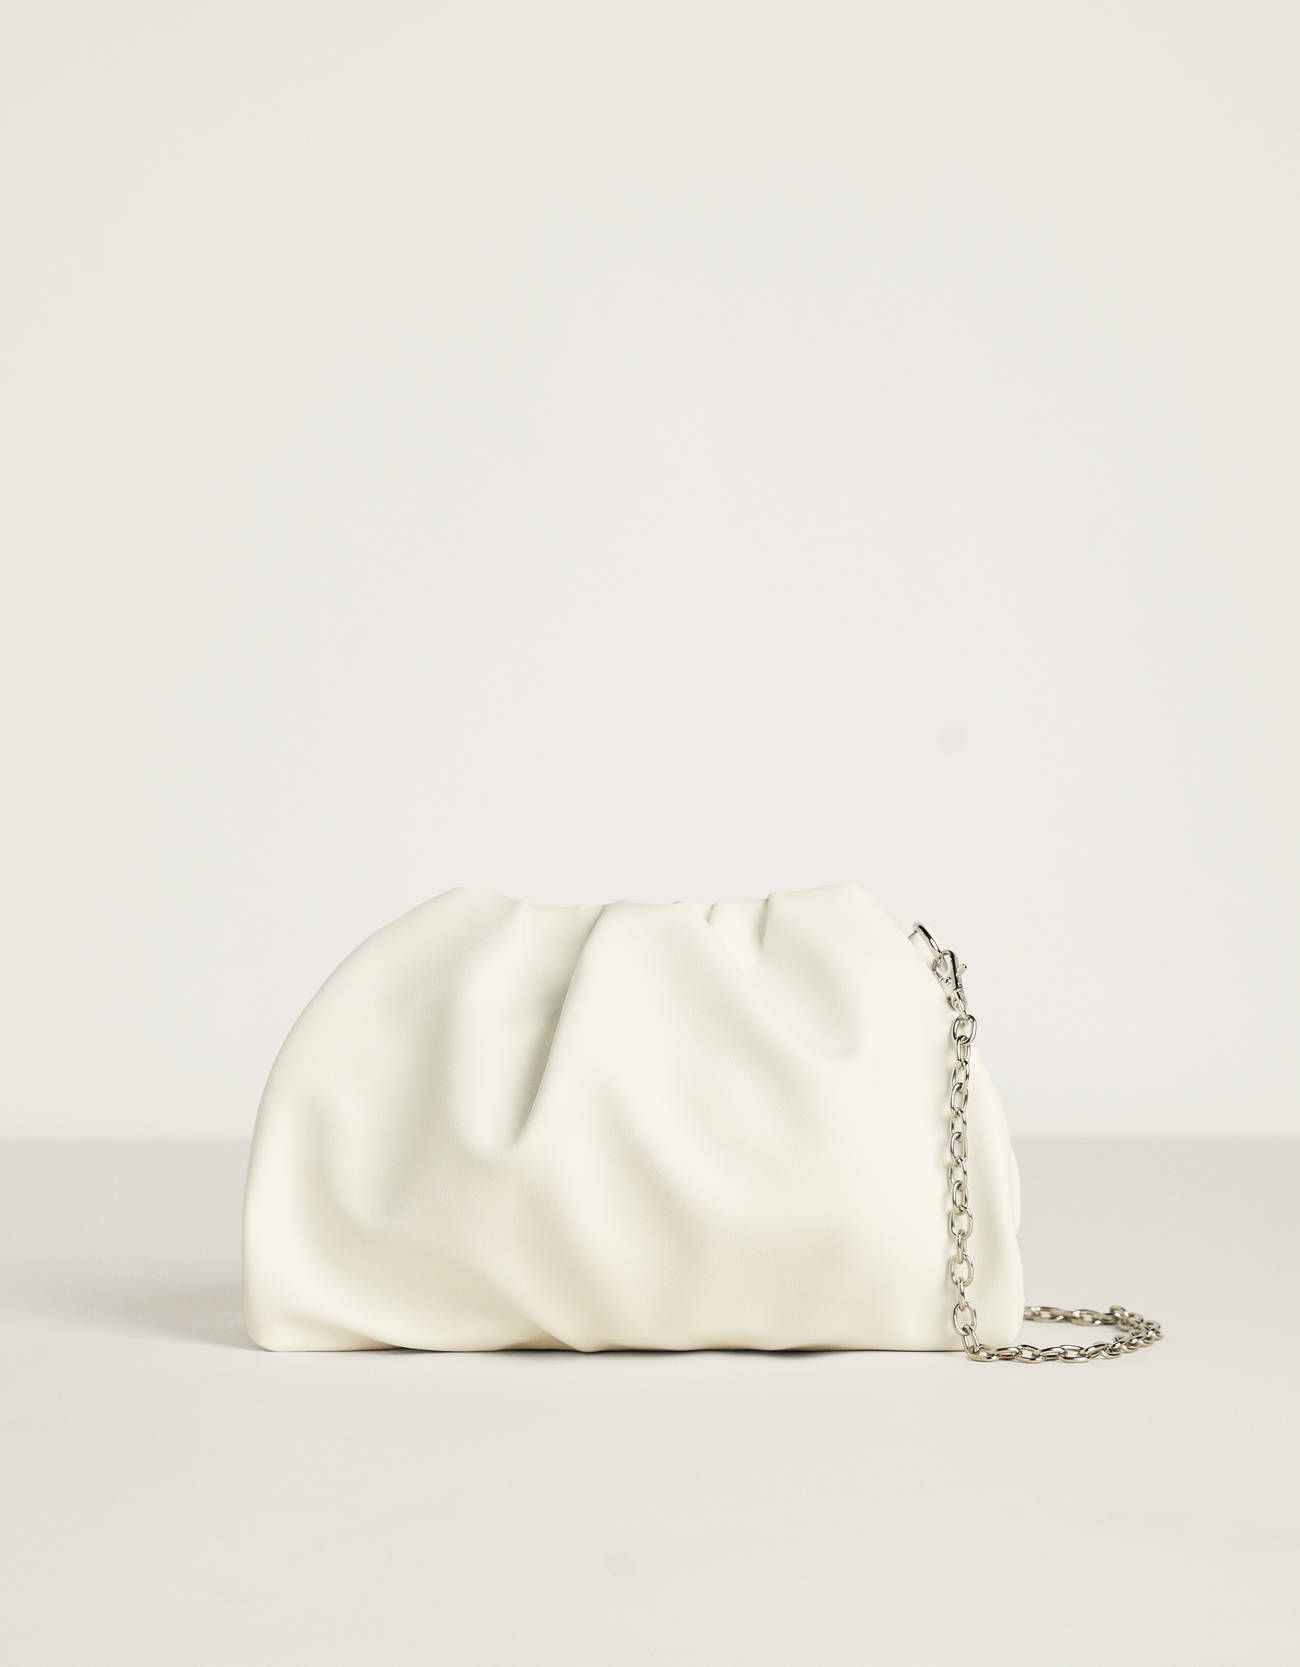 Bolso blanco con cadena (disponible en color negro)